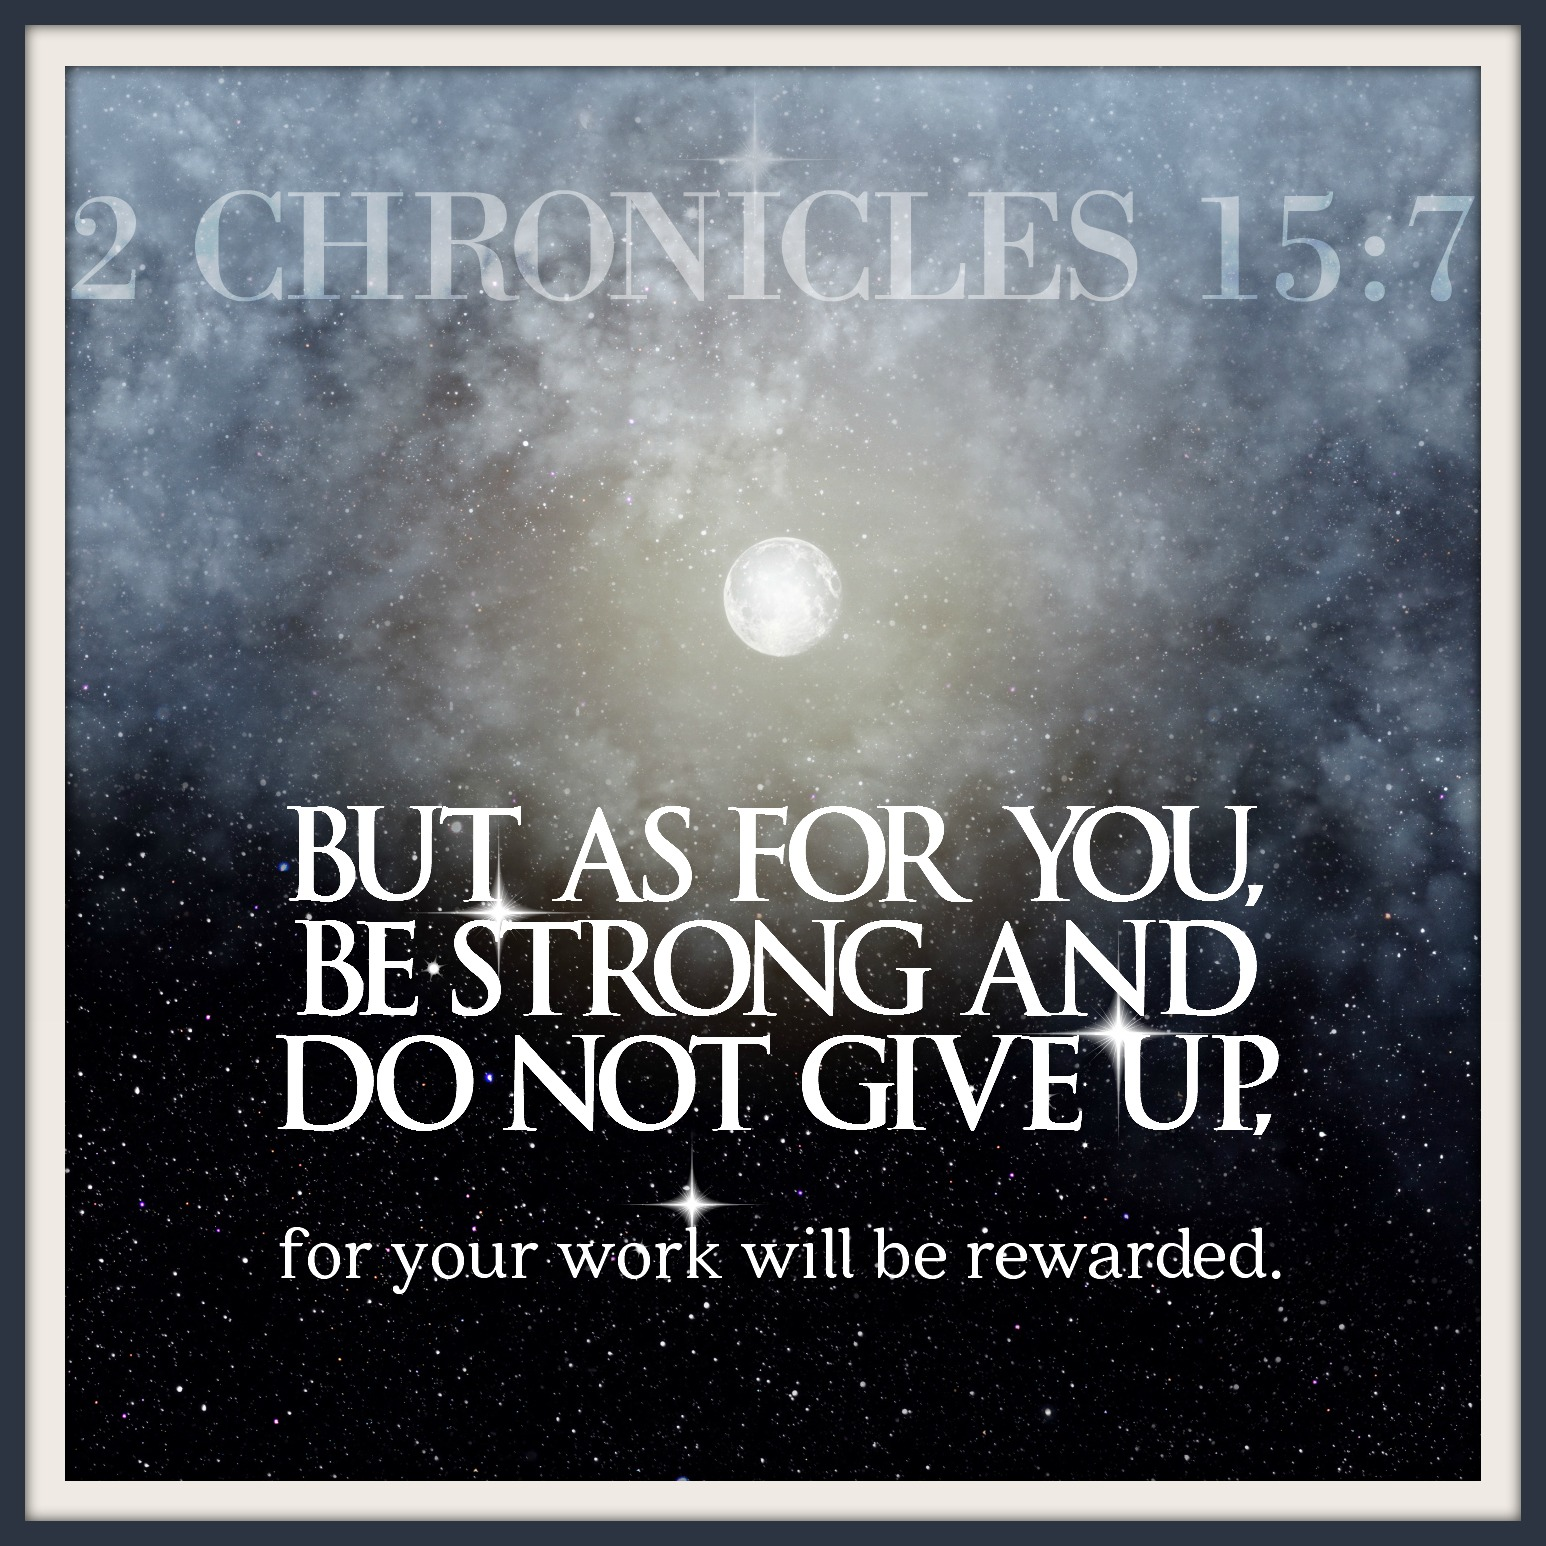 2 Chronicles 15:7